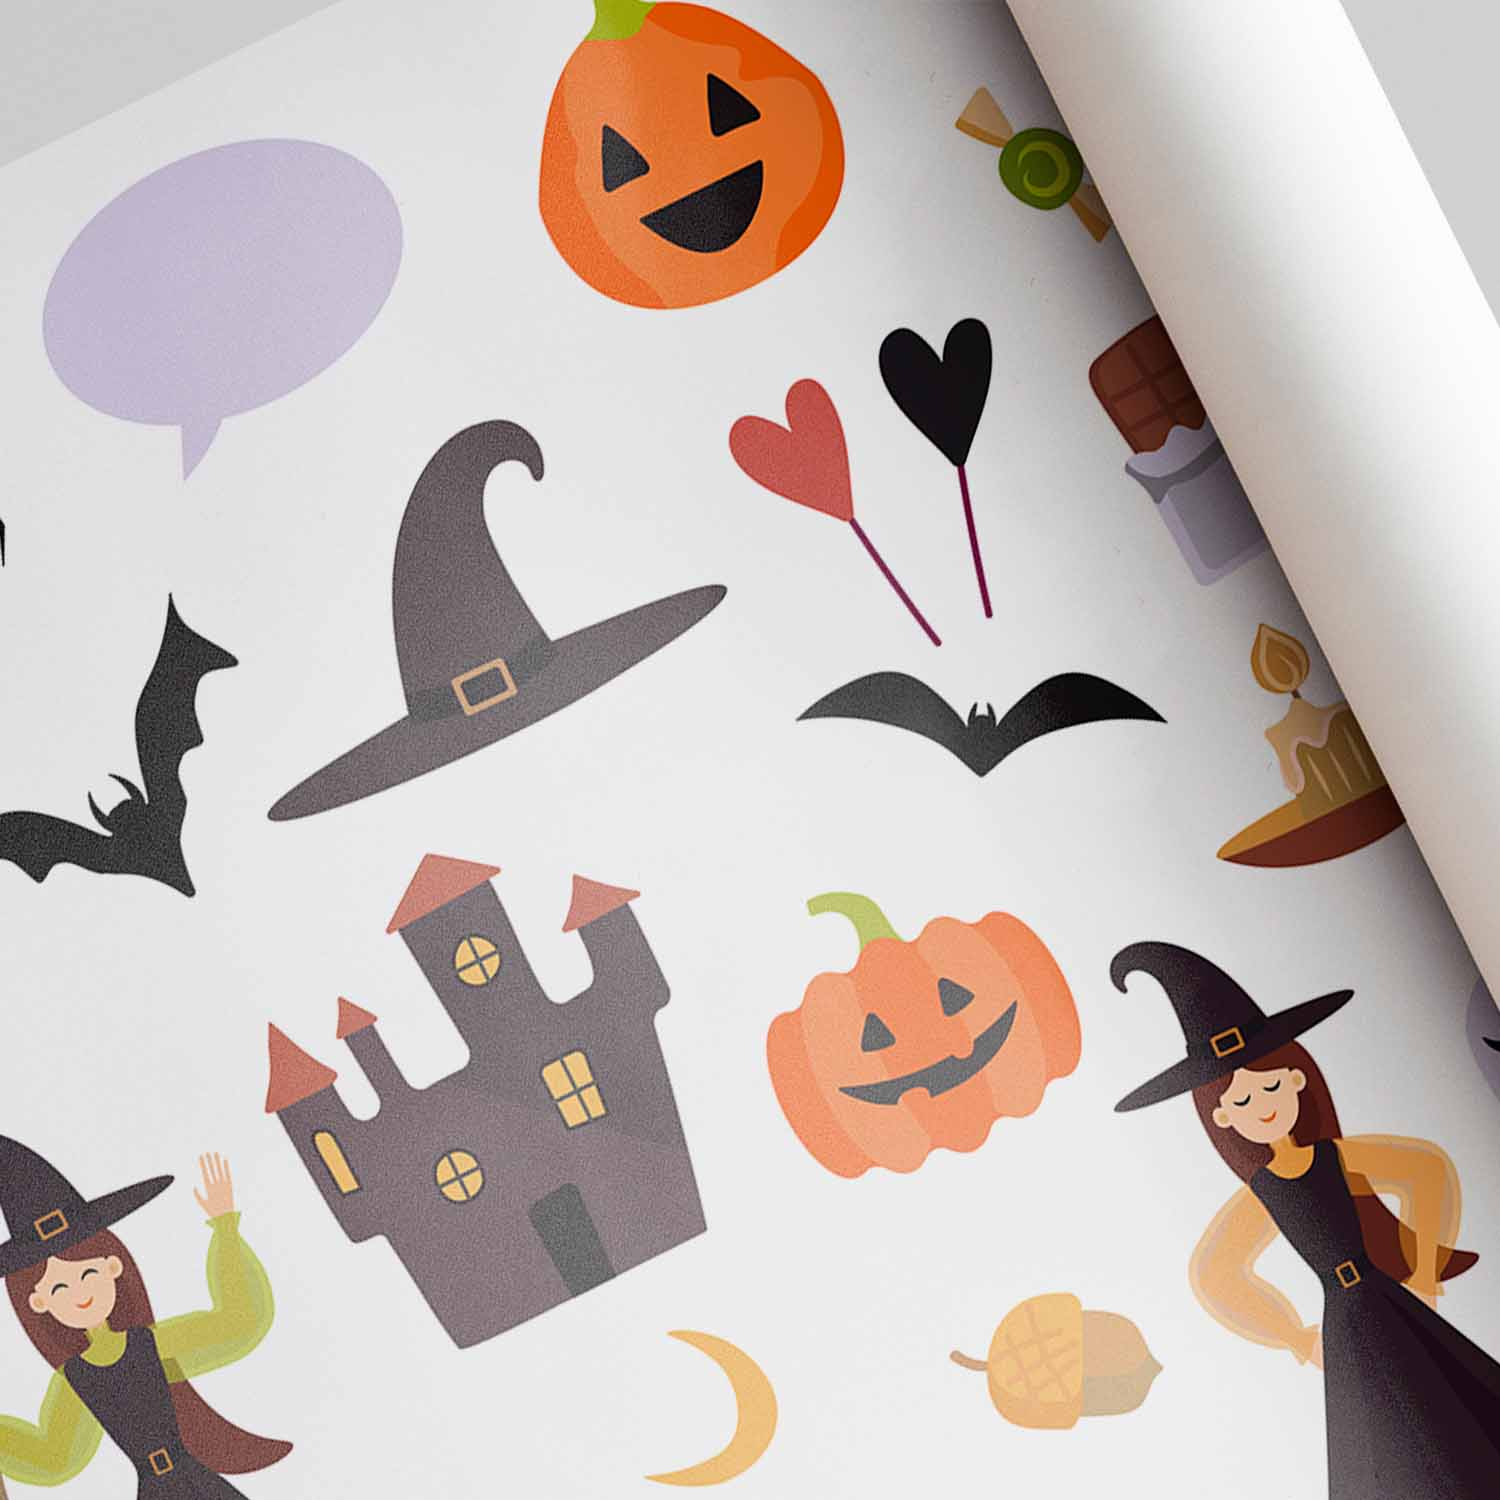 40 Happy Halloween Vector Illustrations preview image.